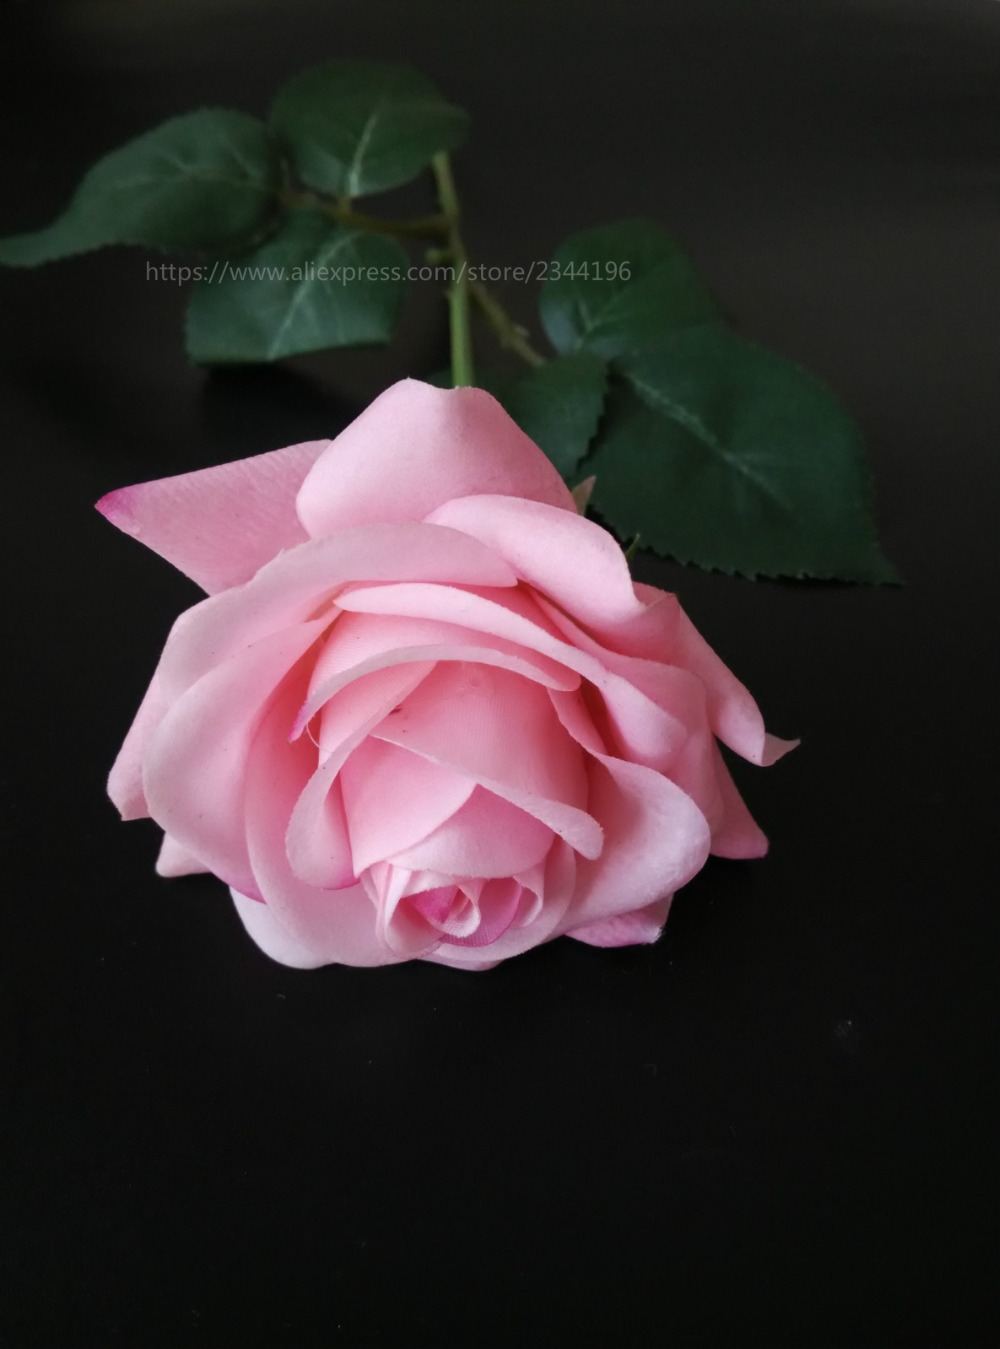 Valentines day baby pink rose for baby girl birthday wedding valentines day baby pink rose for baby girl birthday wedding decoration flower arrangement real touch flowers in artificial dried flowers from home mightylinksfo